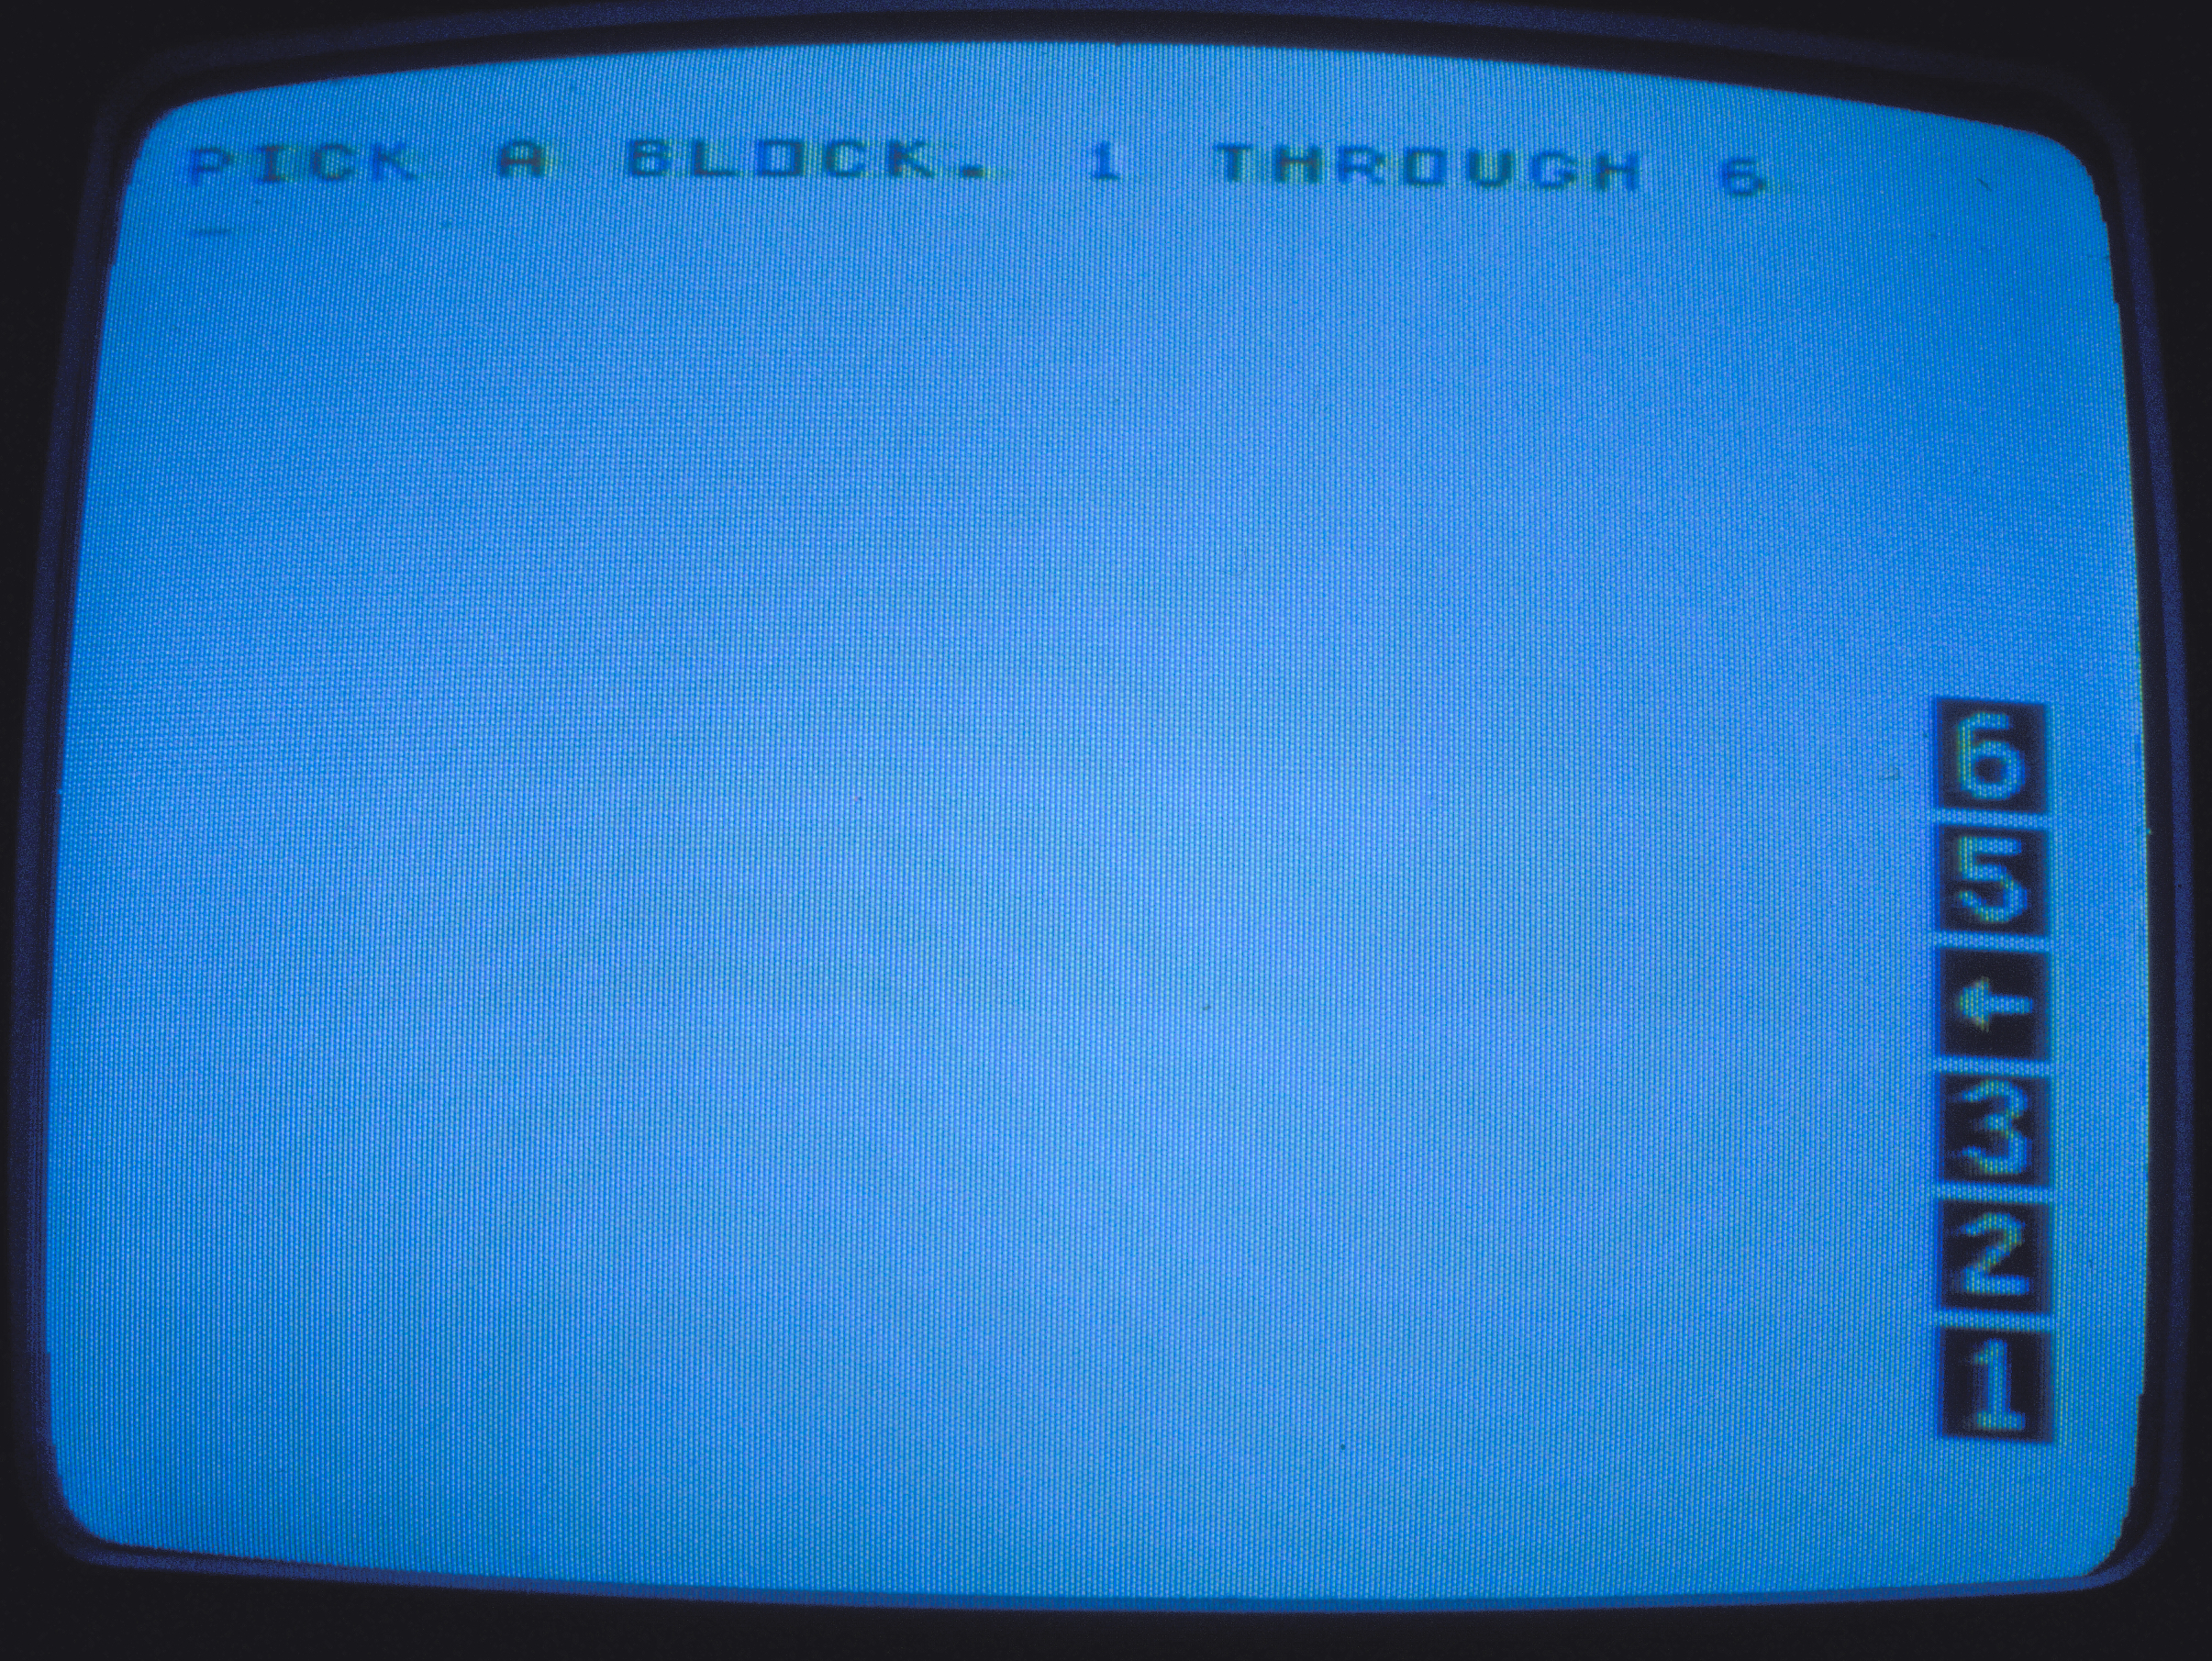 Peggy's BLOCKS world, 1981. Numbers used as names.